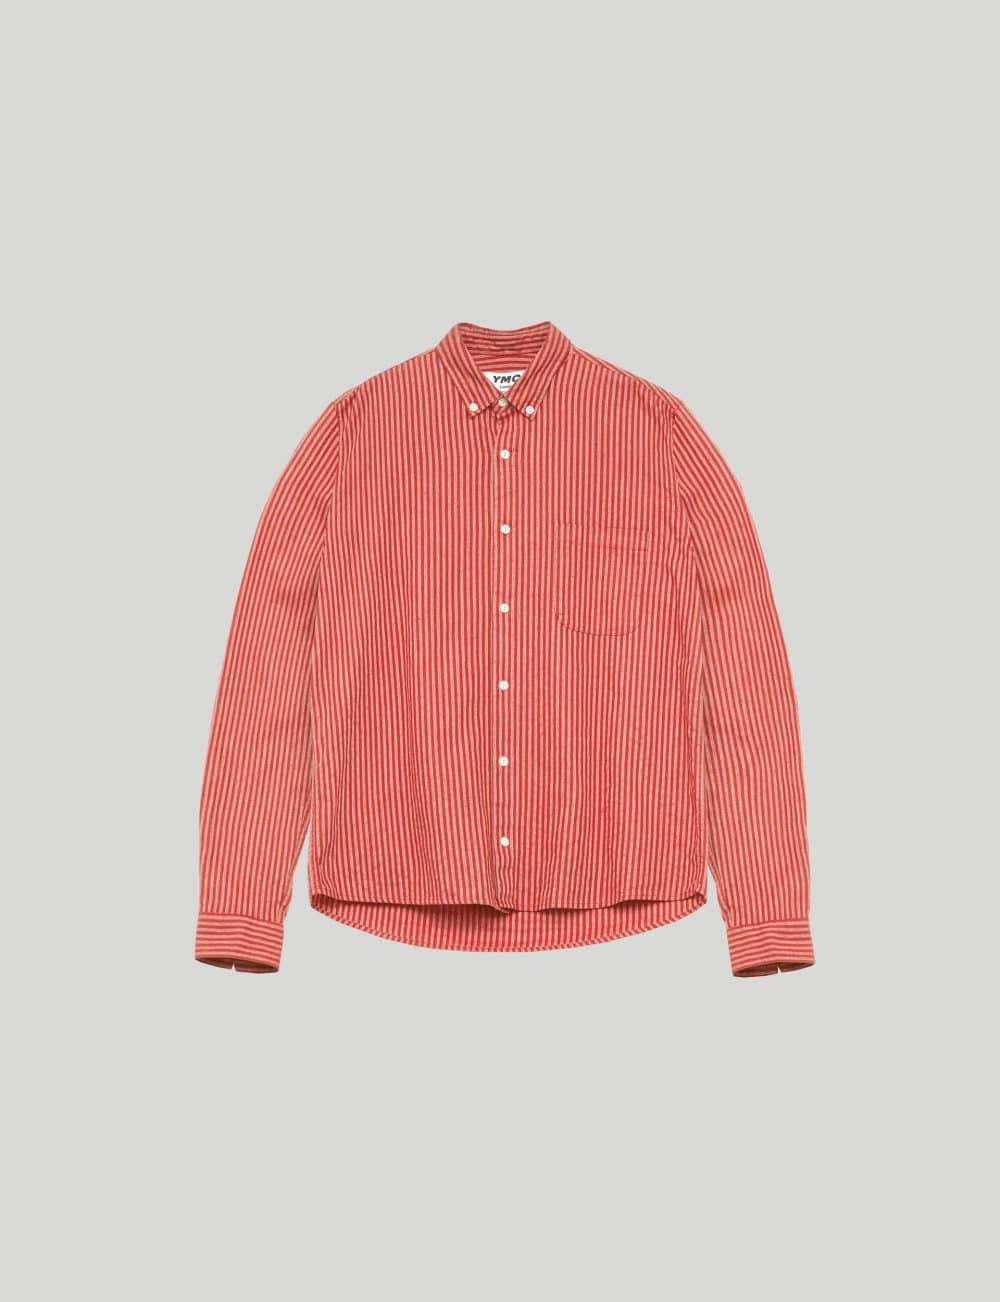 YMC - Castart - Dean Cotton Linen Shirt - Red